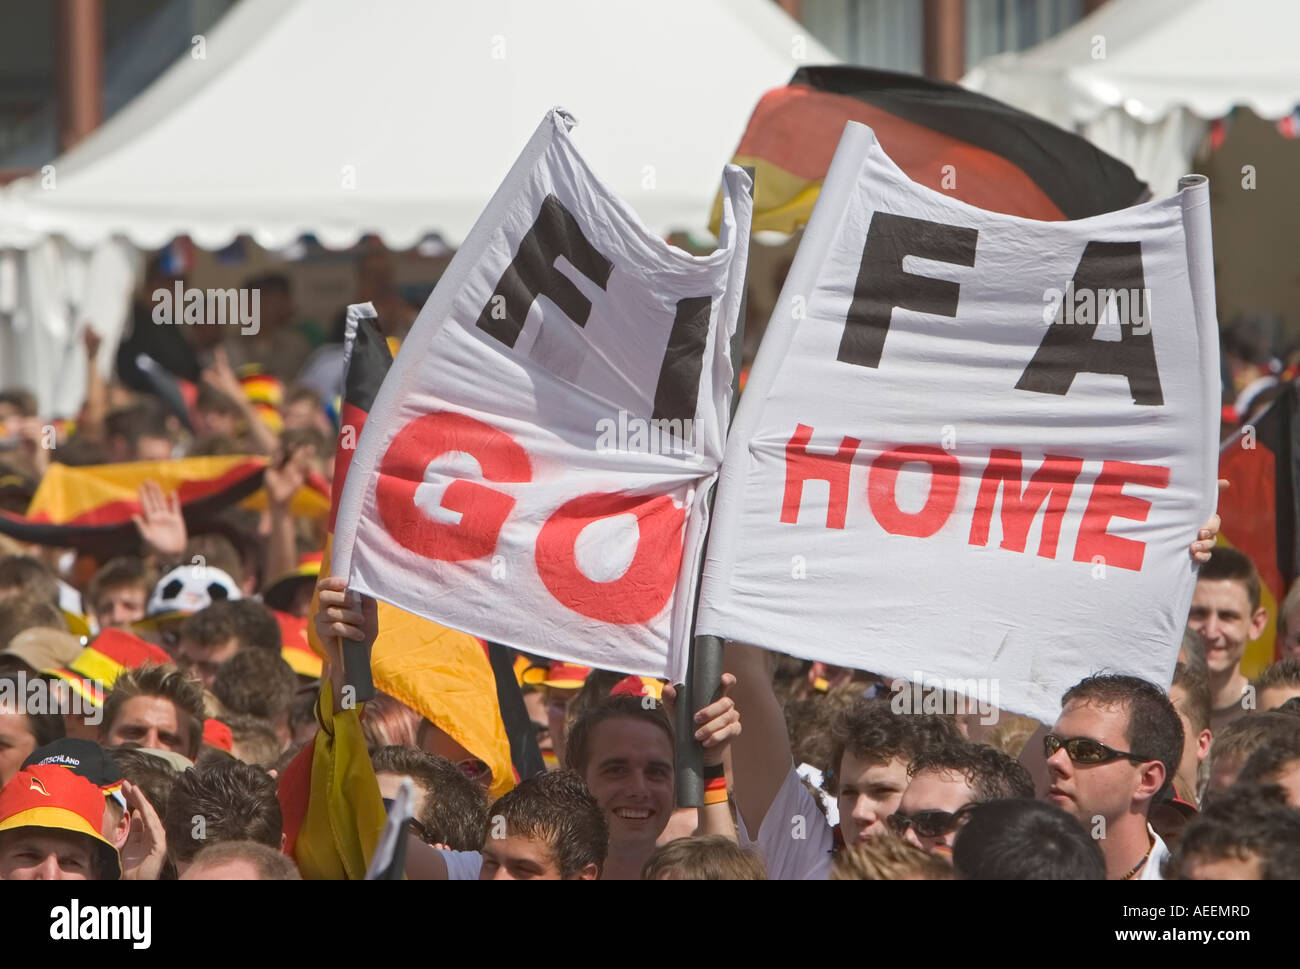 Protest against the world football association FIFA during the world cup match Germany vs Sweden (2:0) at a public viewing zone - Stock Image